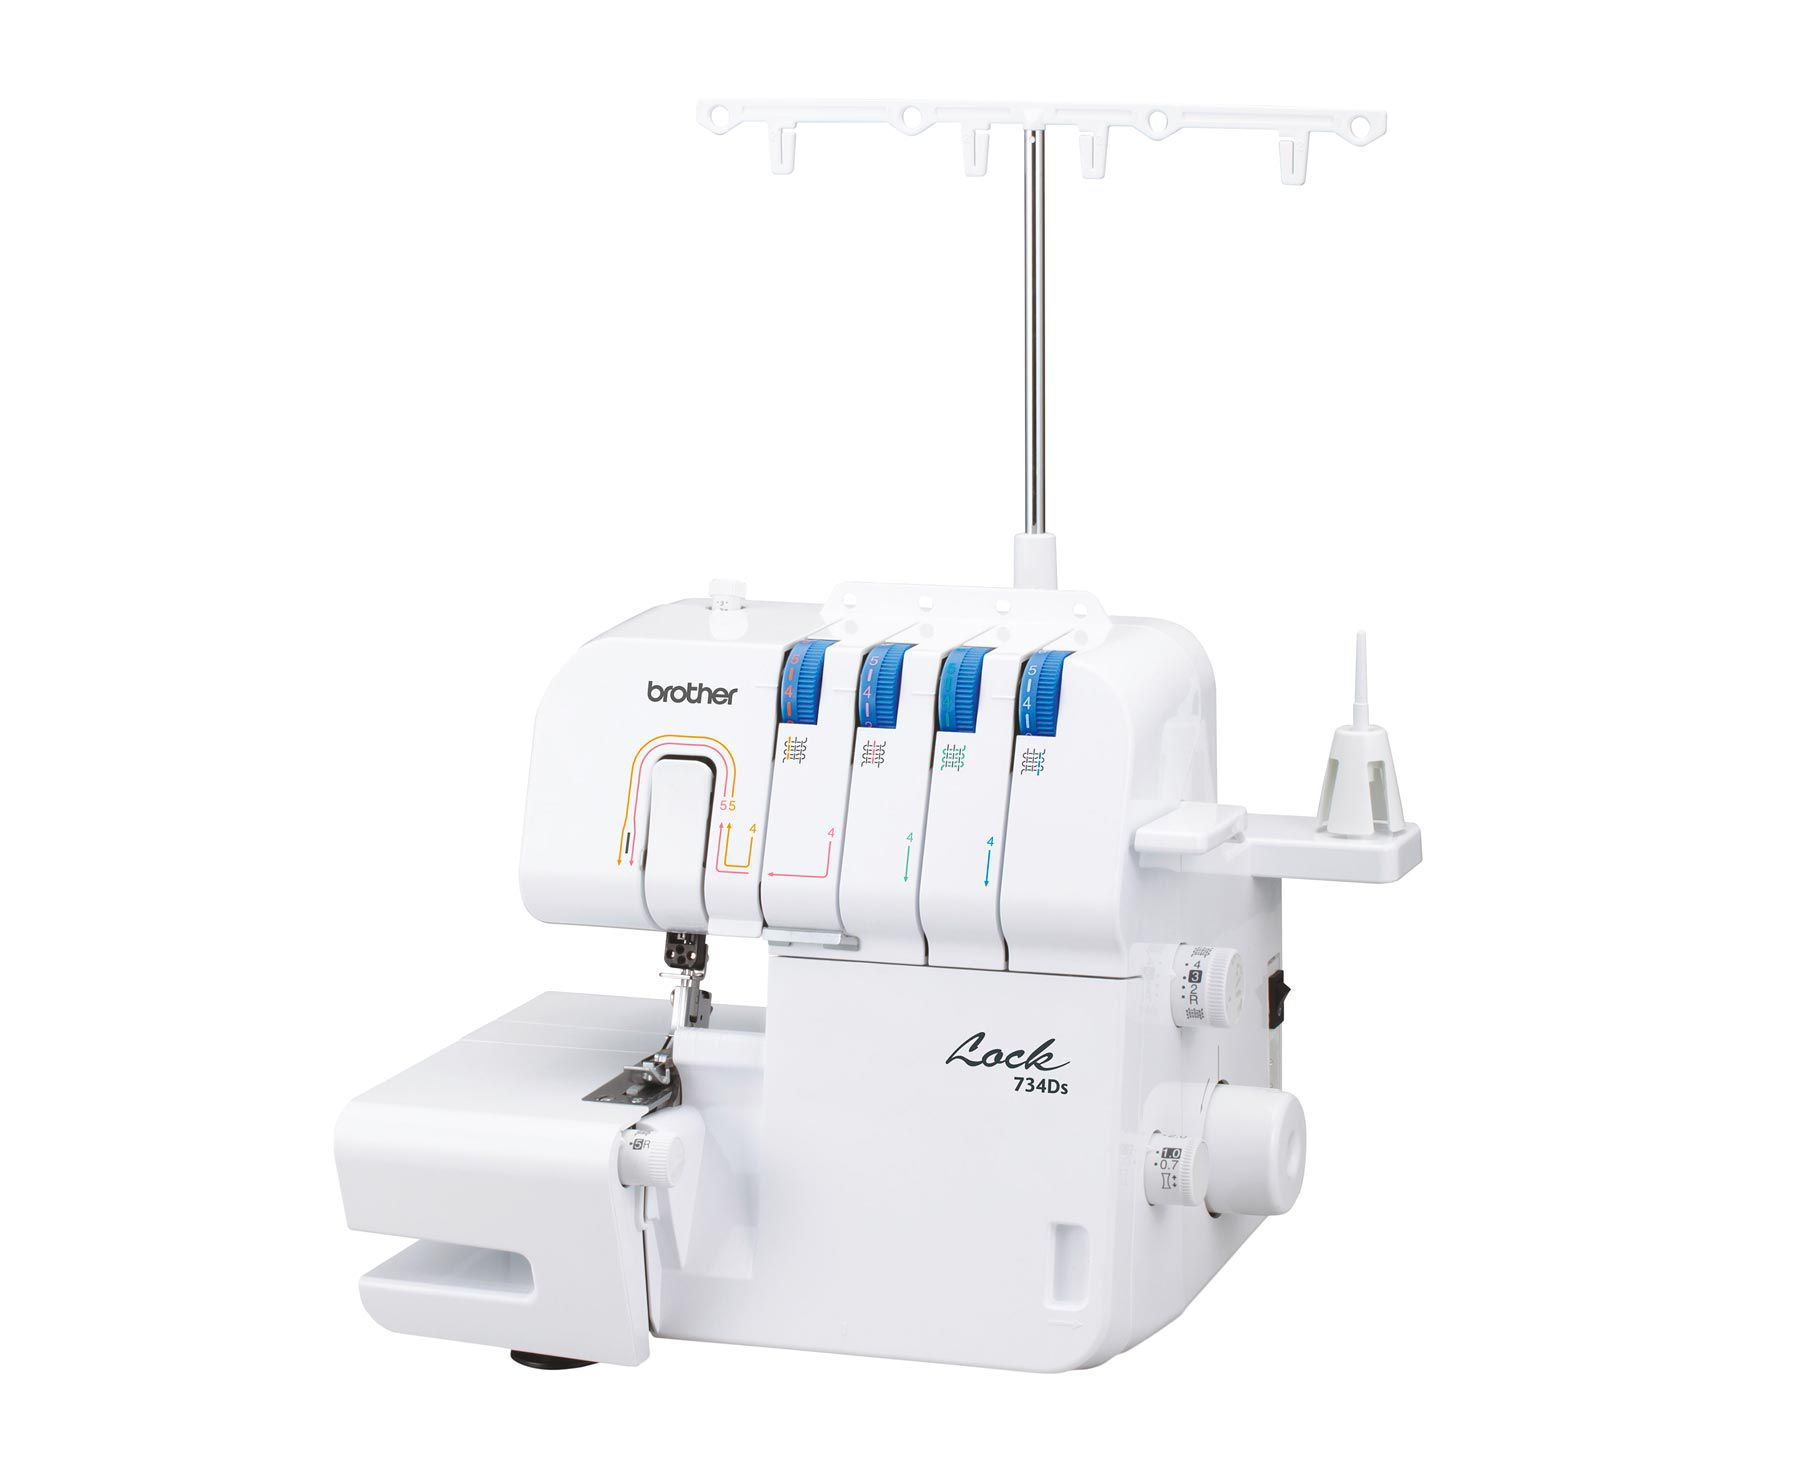 Overclocker or serger machine